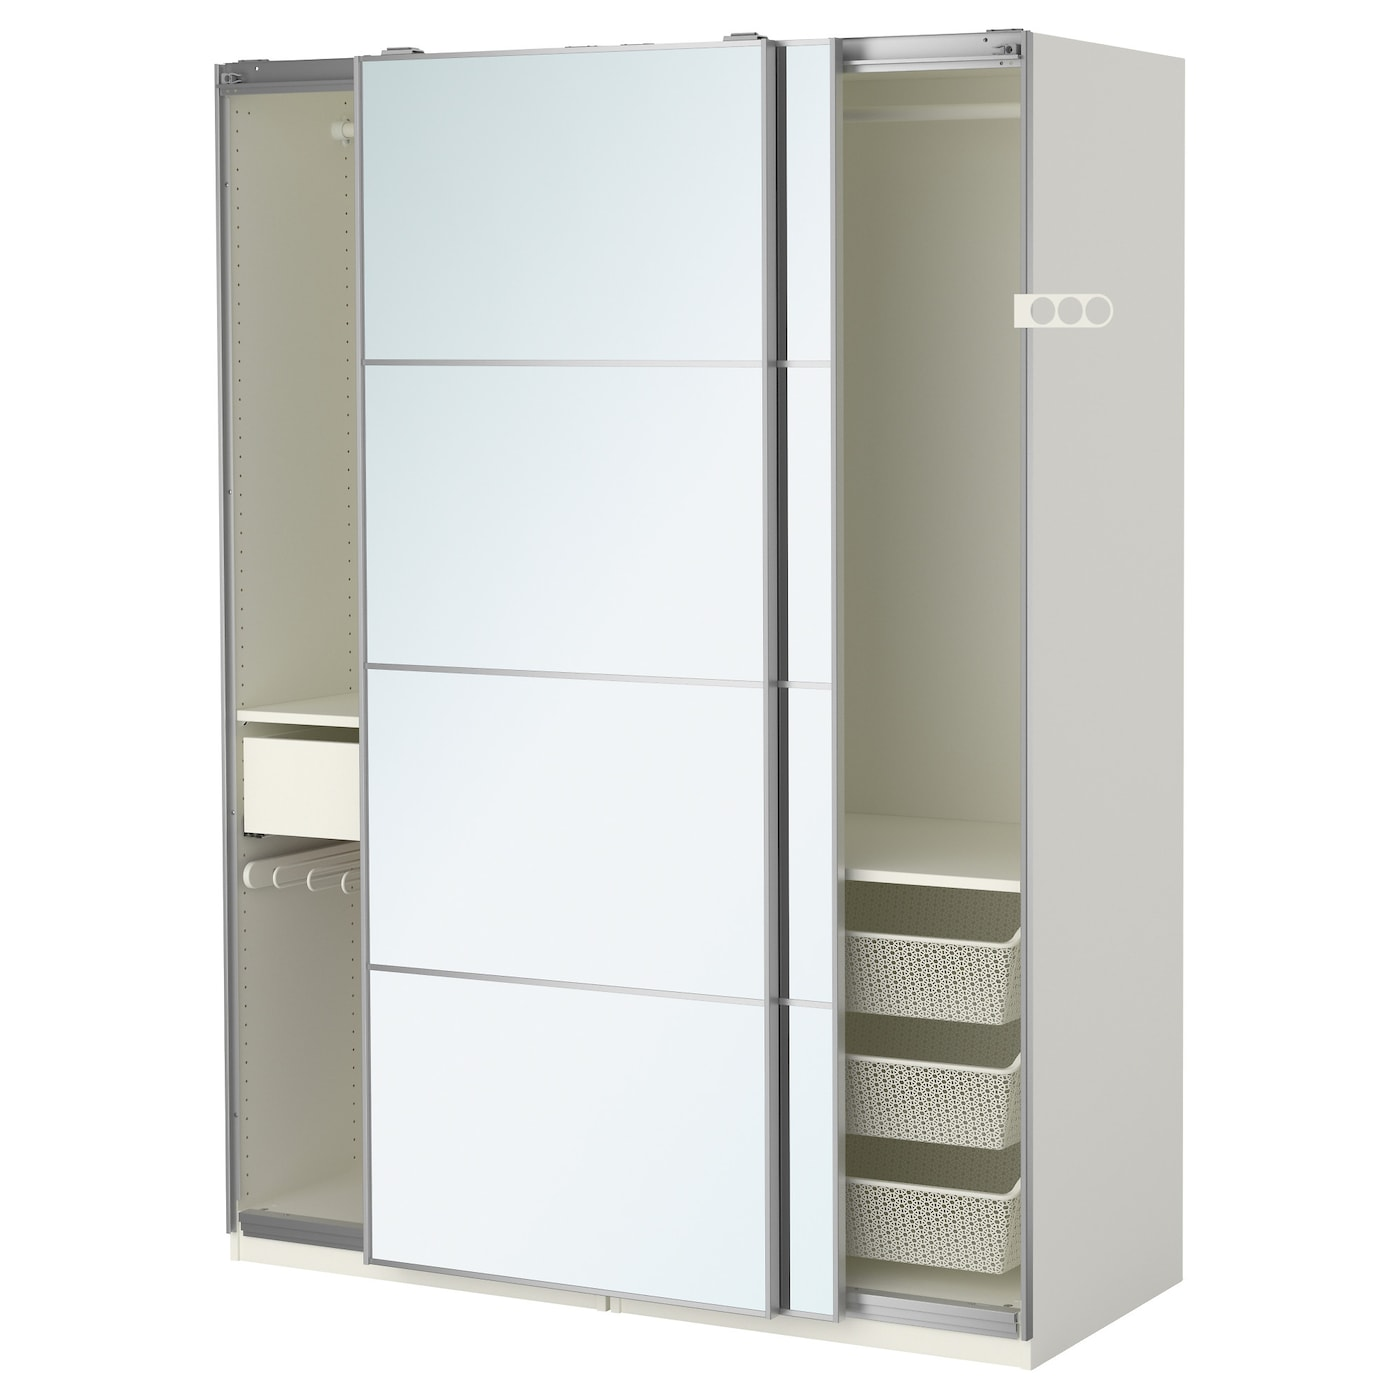 PAX Wardrobe White auli mirror glass 150x66x201 cm